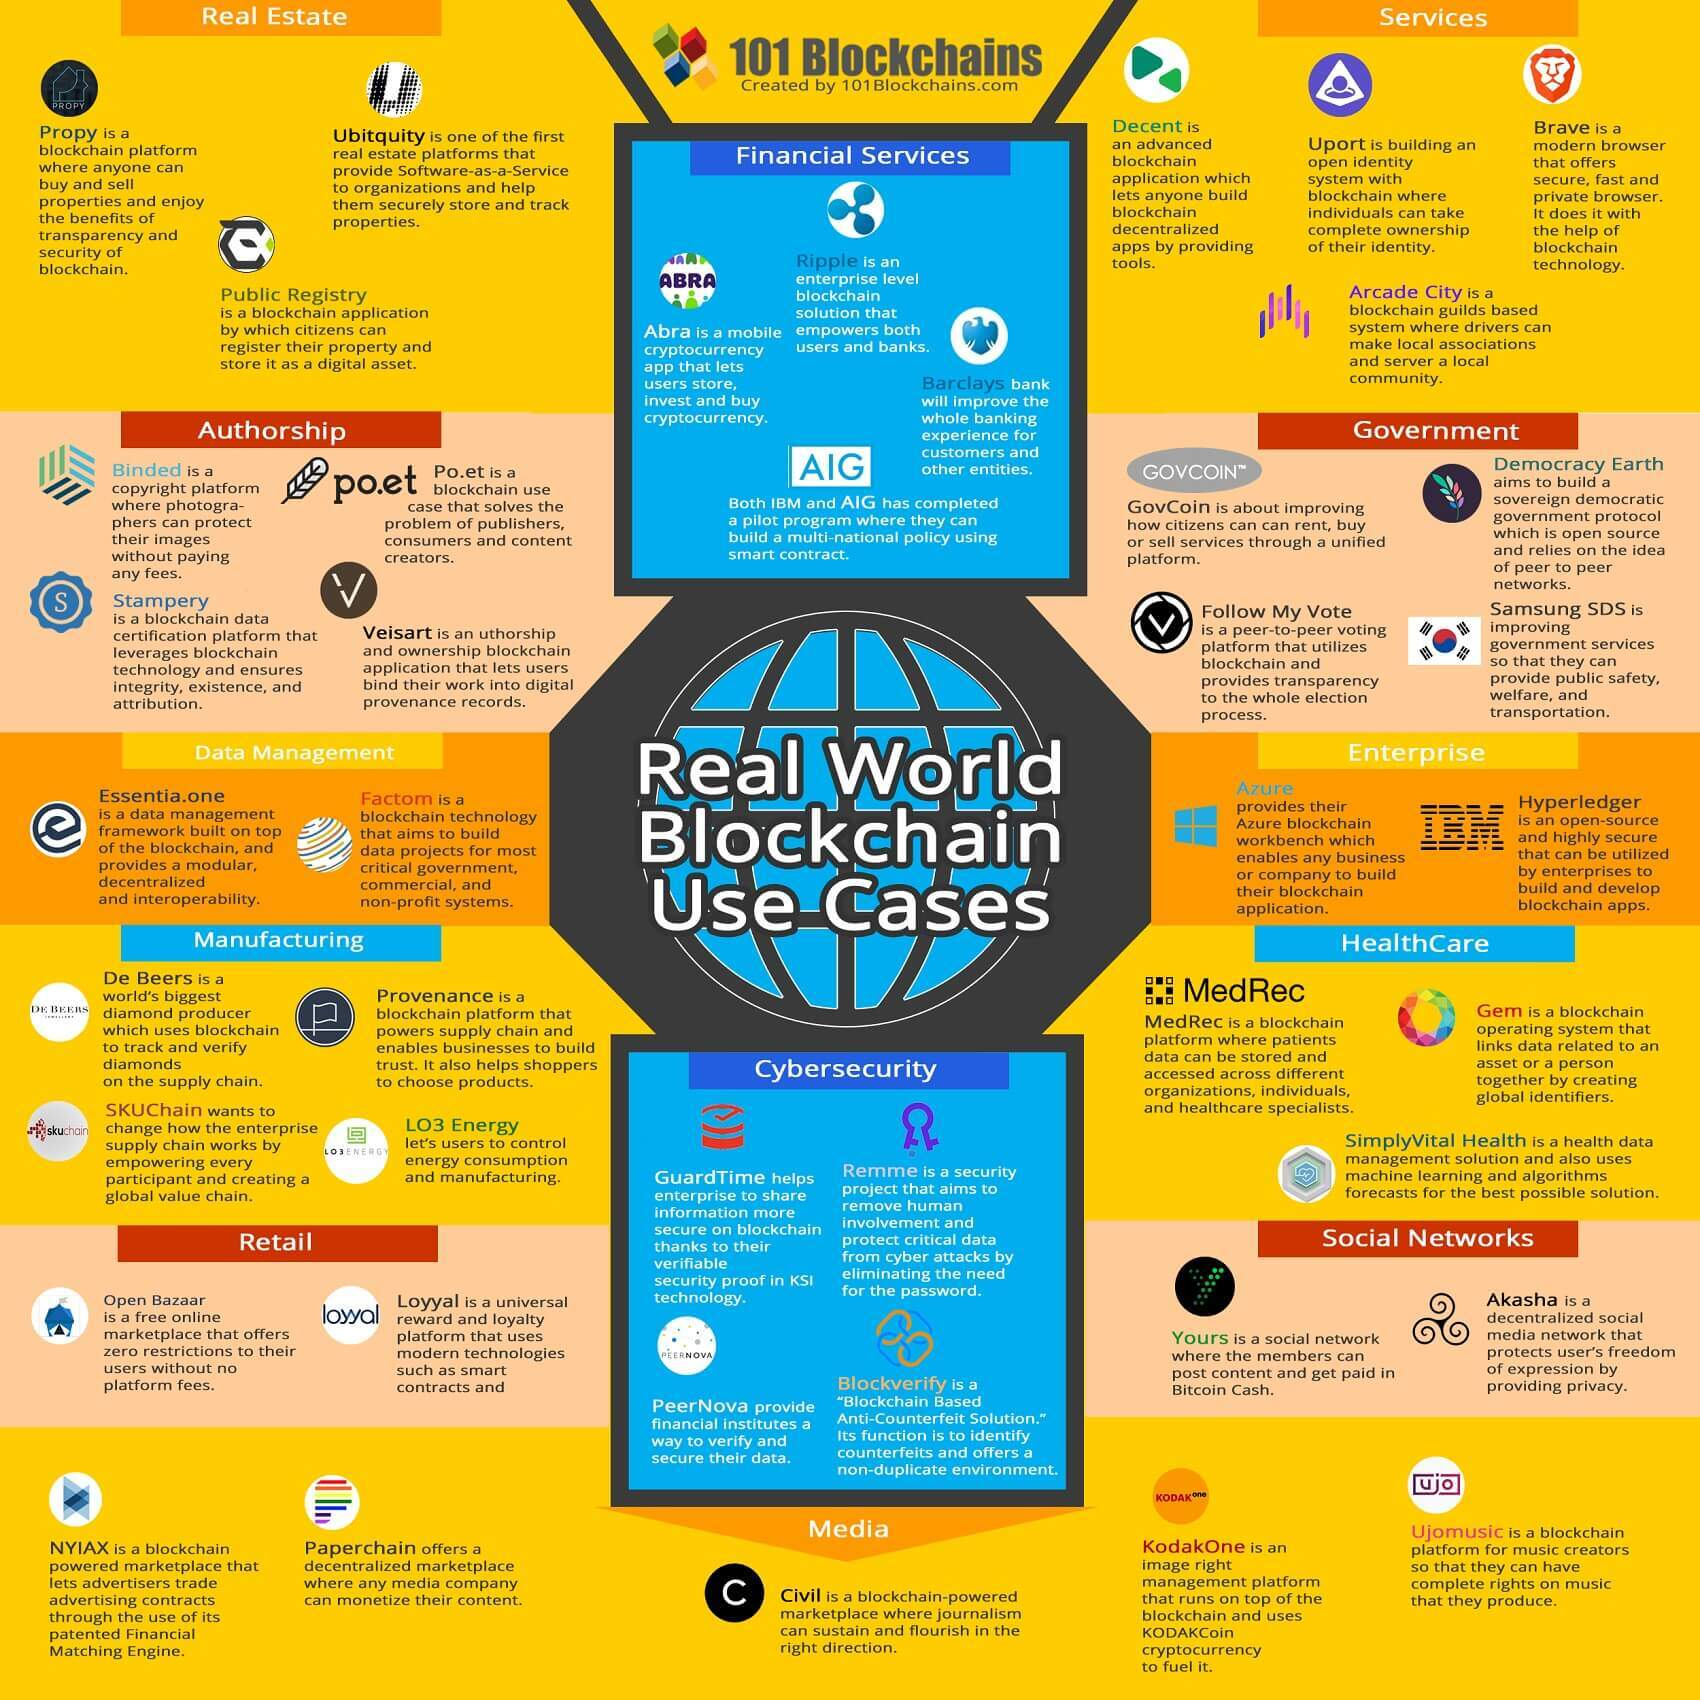 Real World Blockchain Use Cases - 46 Blockchain Applications